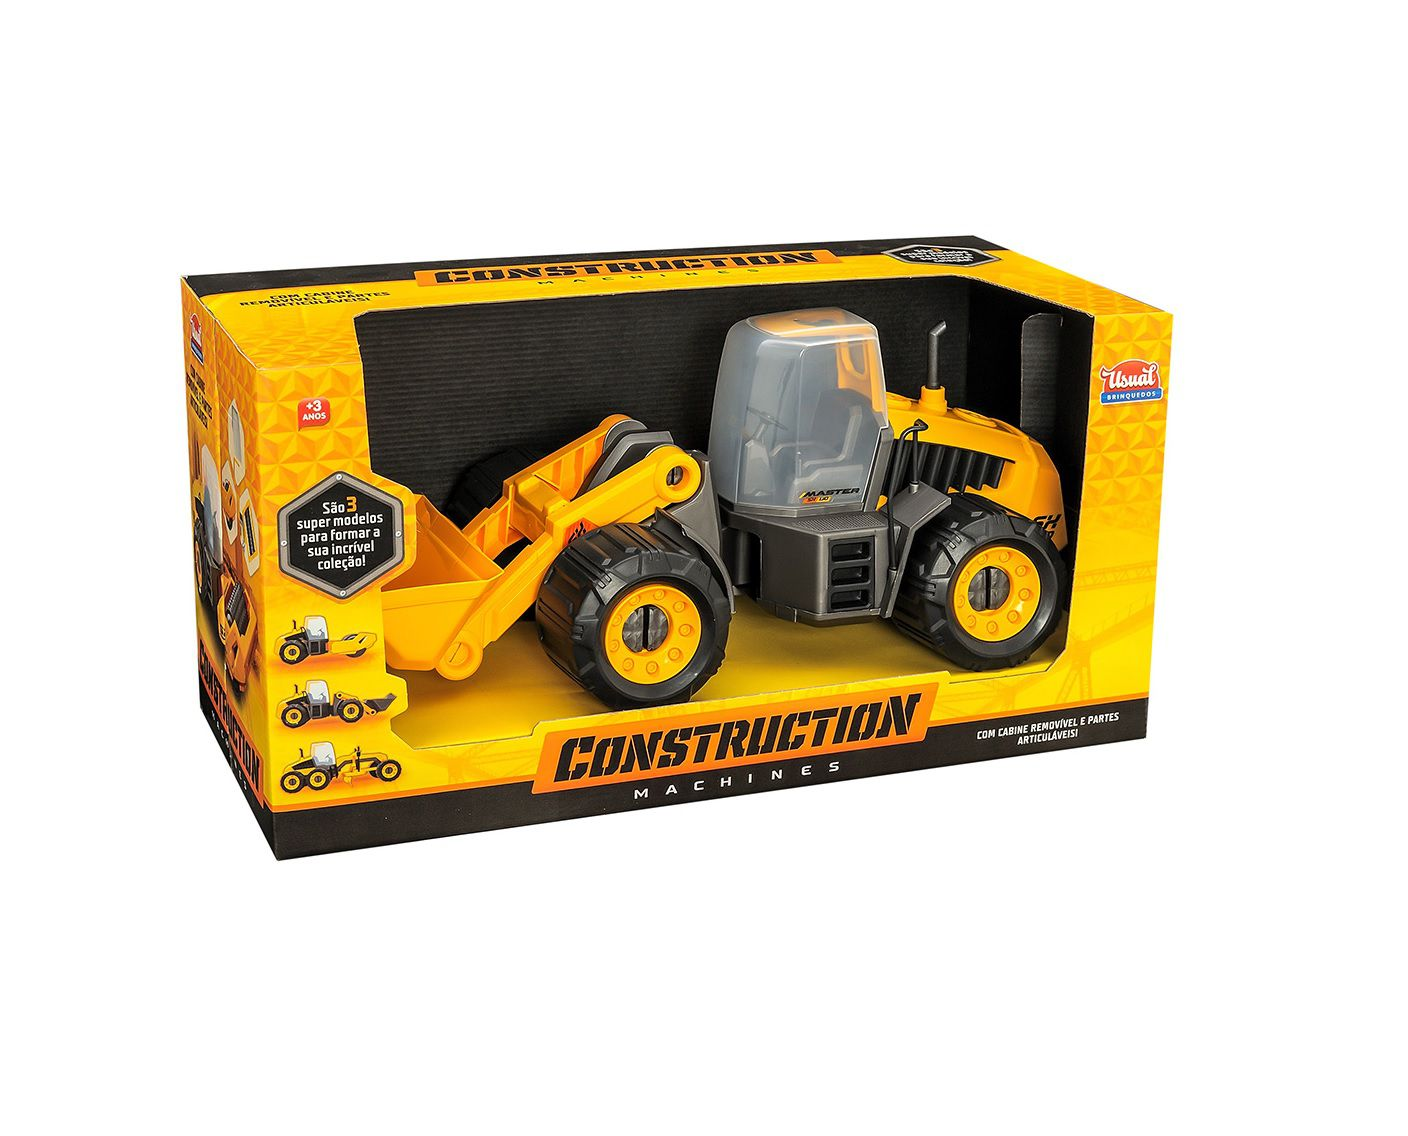 Trator Construction Machines Master SX 130 - Usual Brinquedos